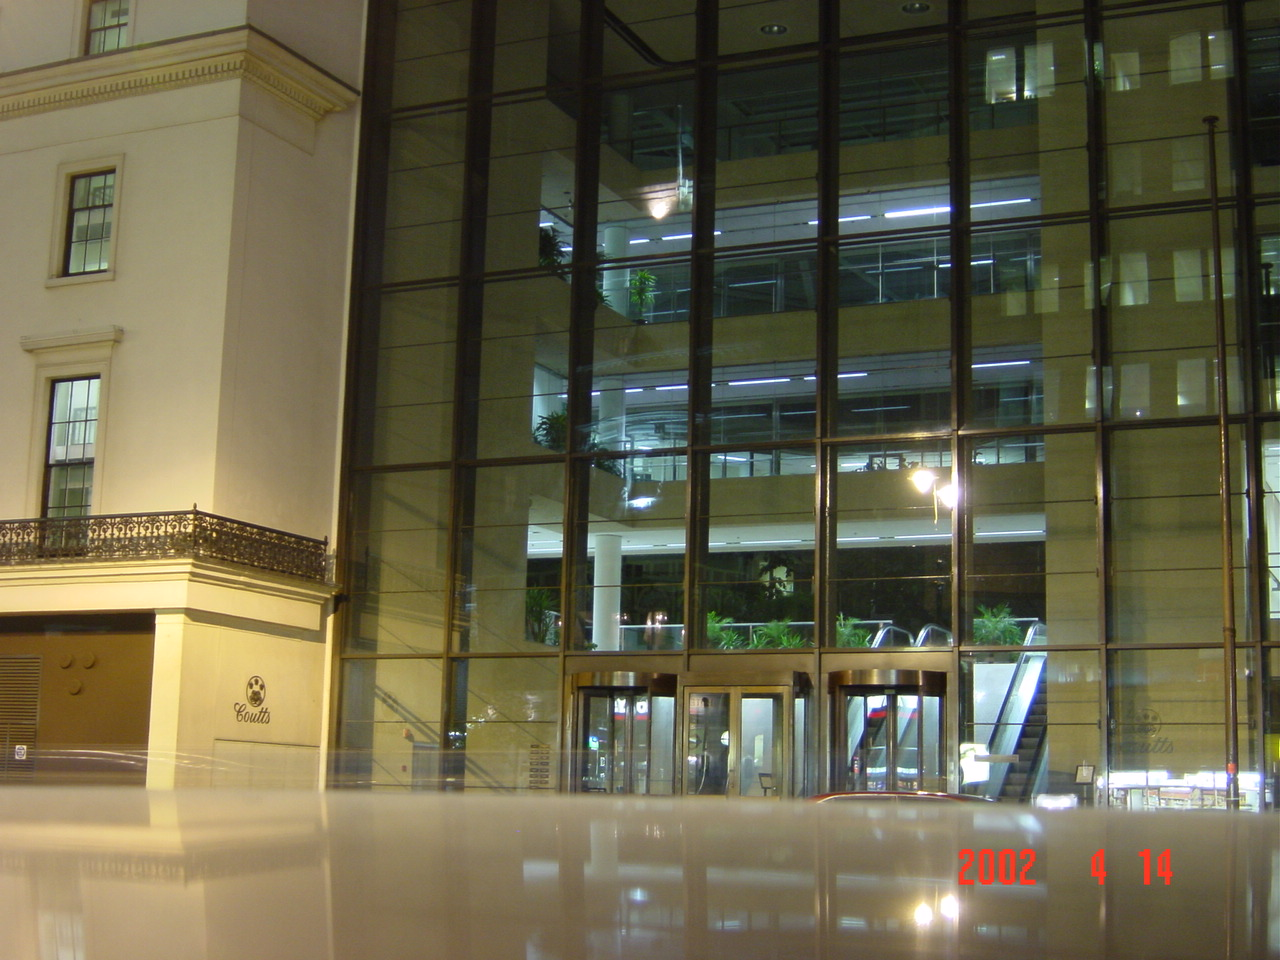 Coutts Headquarters